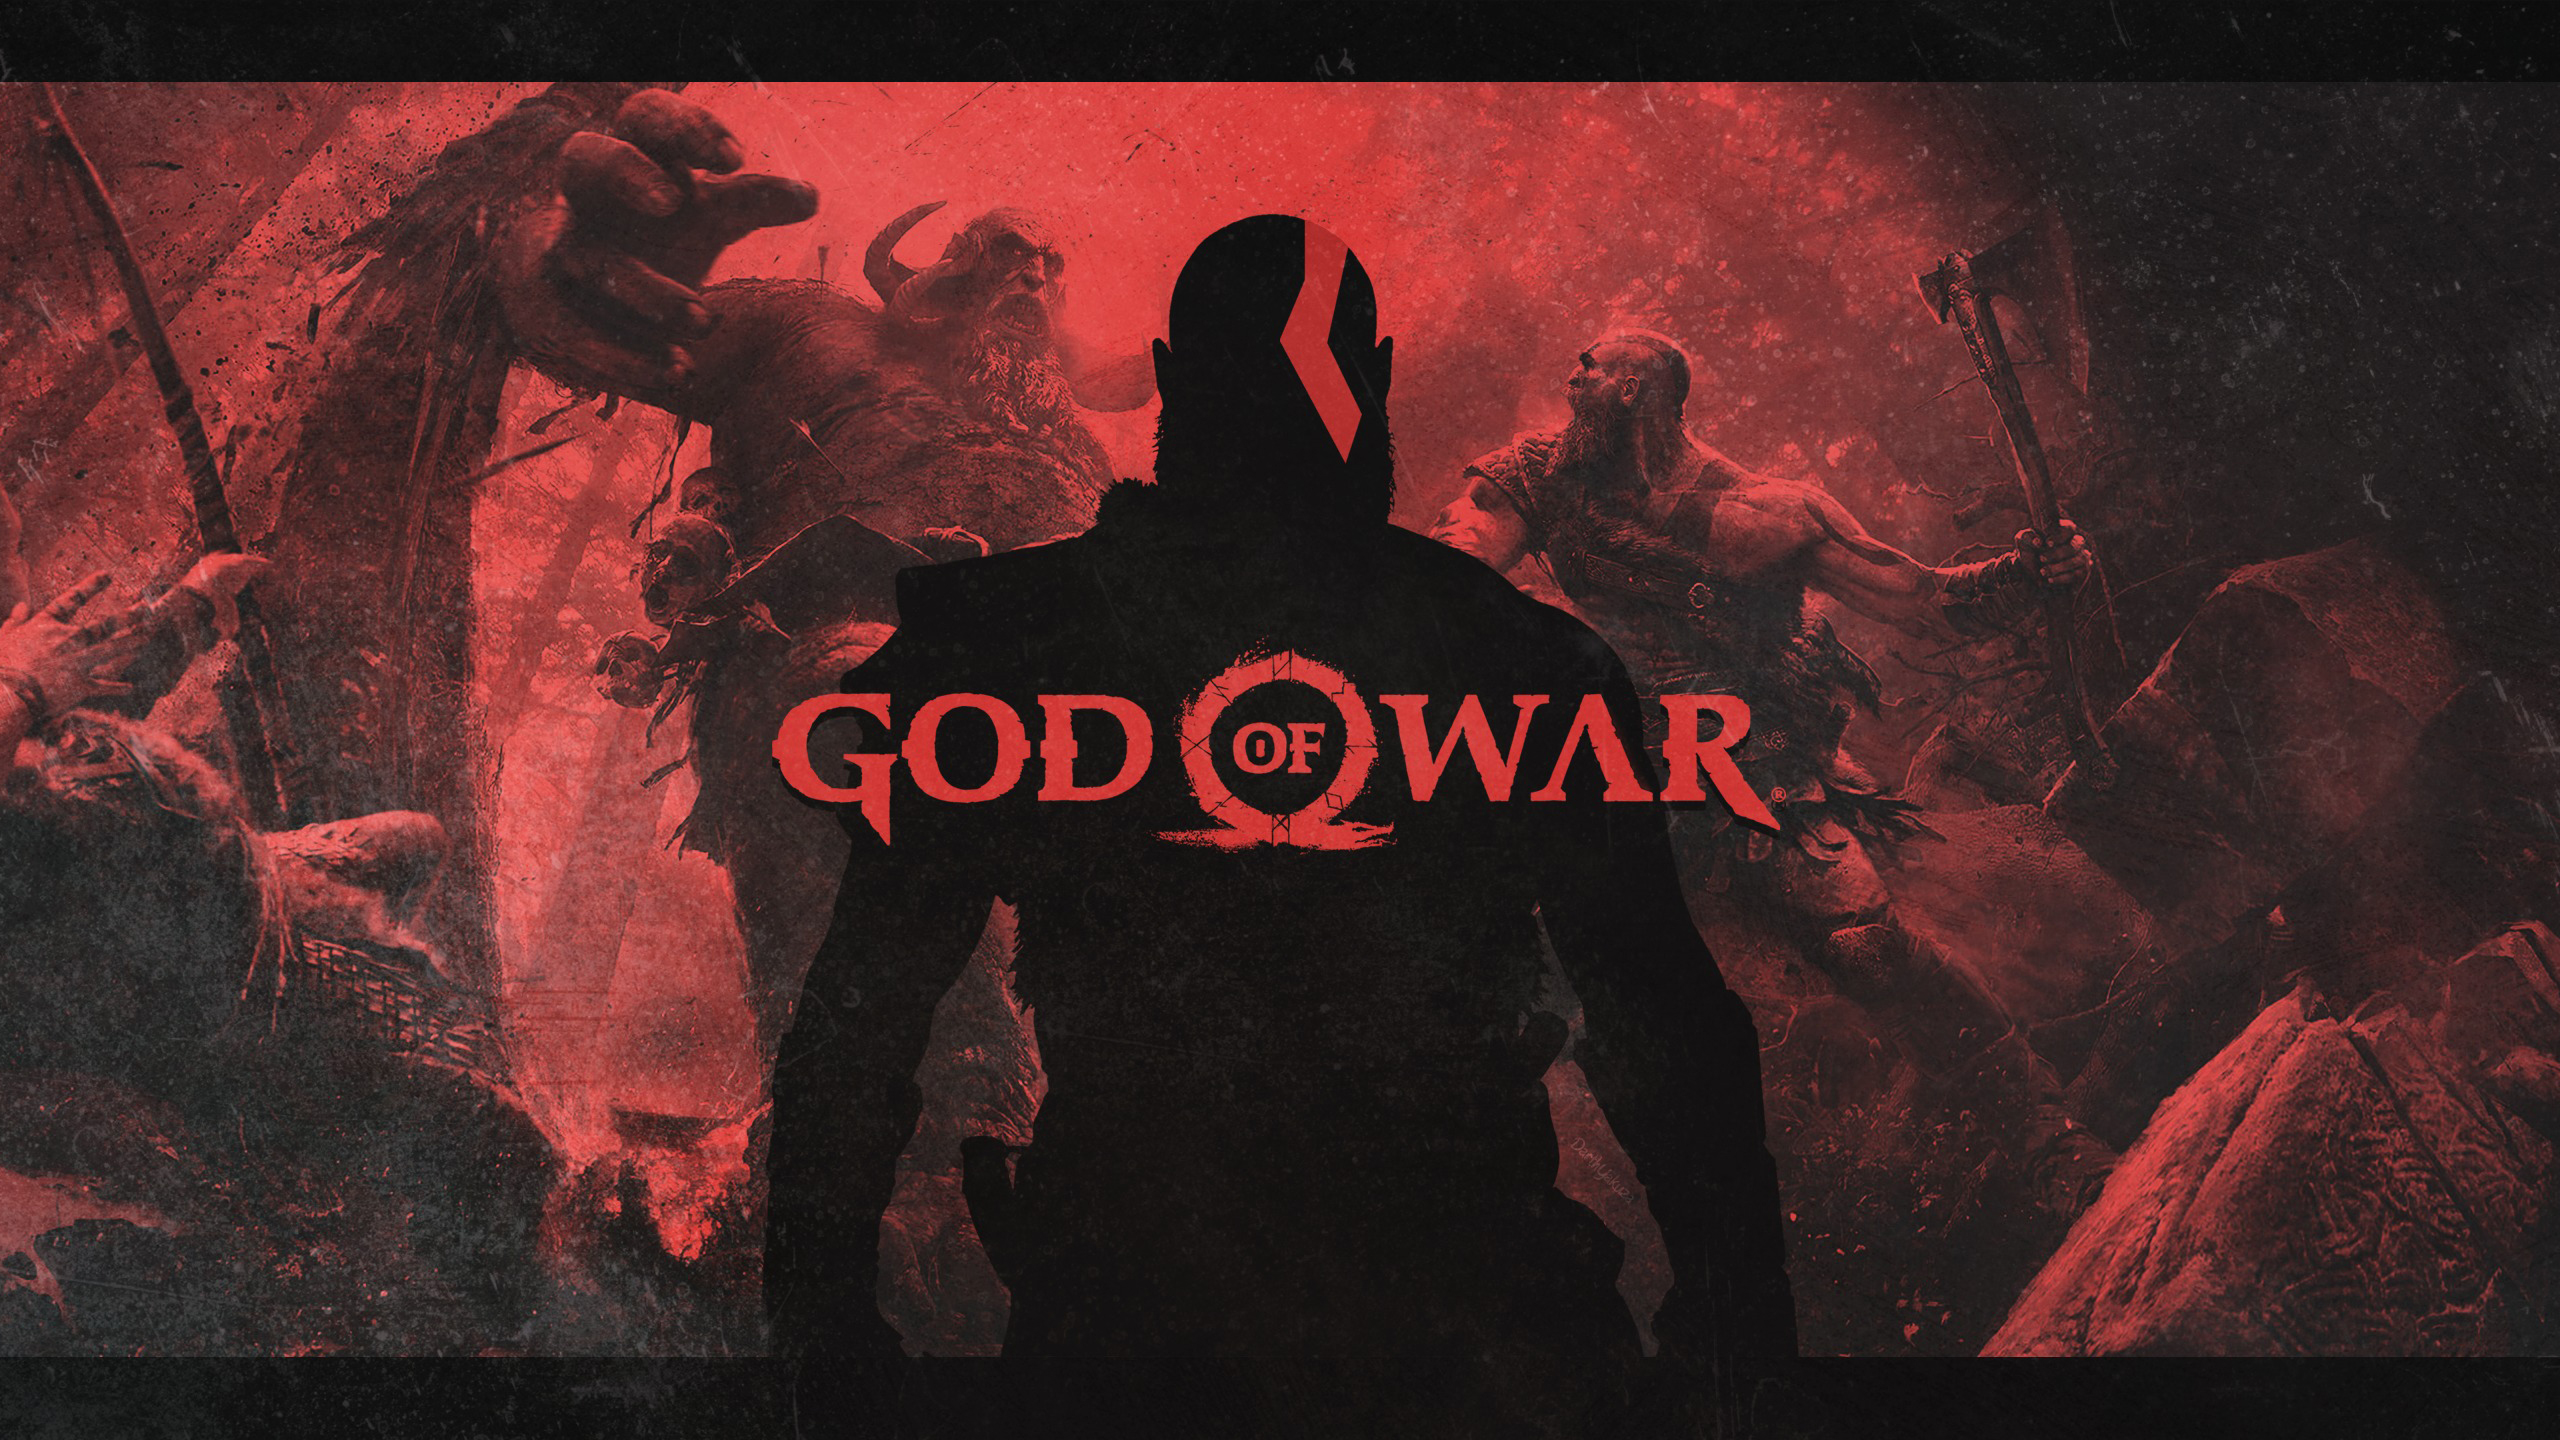 God Of War PS4 2018542604104 - God of War PS4 2018 - War, PS4, God, Exiles, 2018